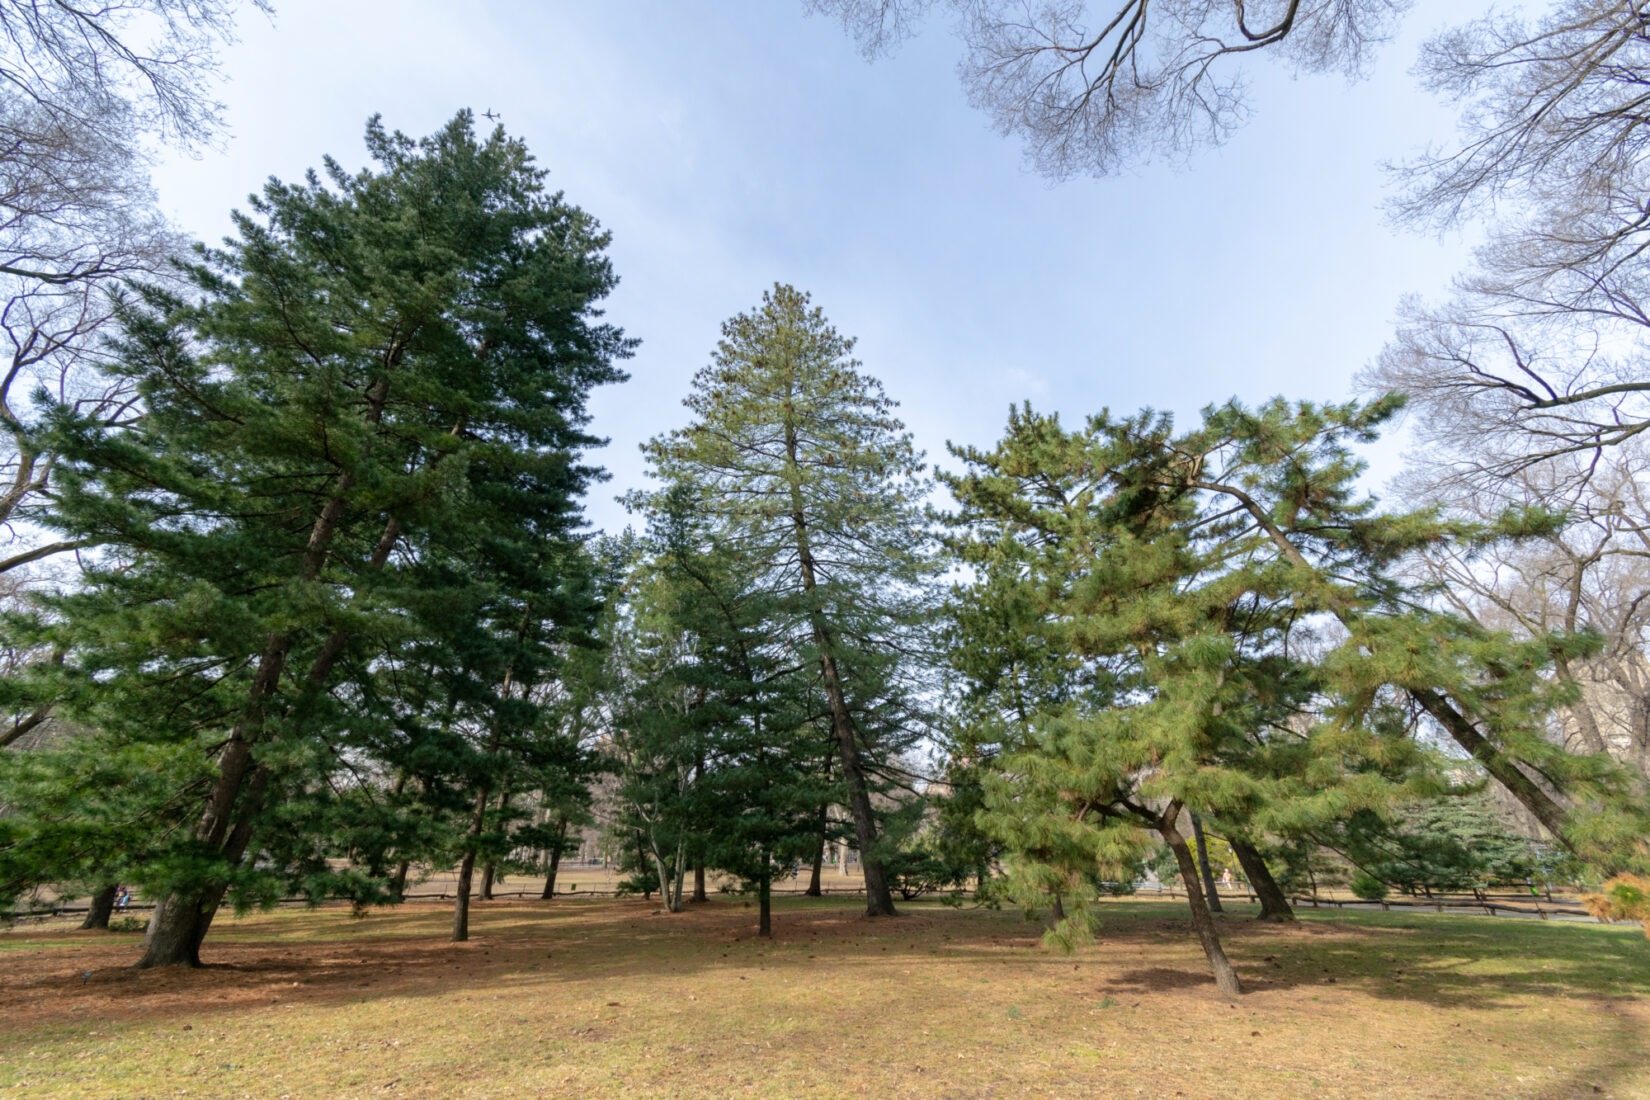 A winter view of pine trees at the Pinetum